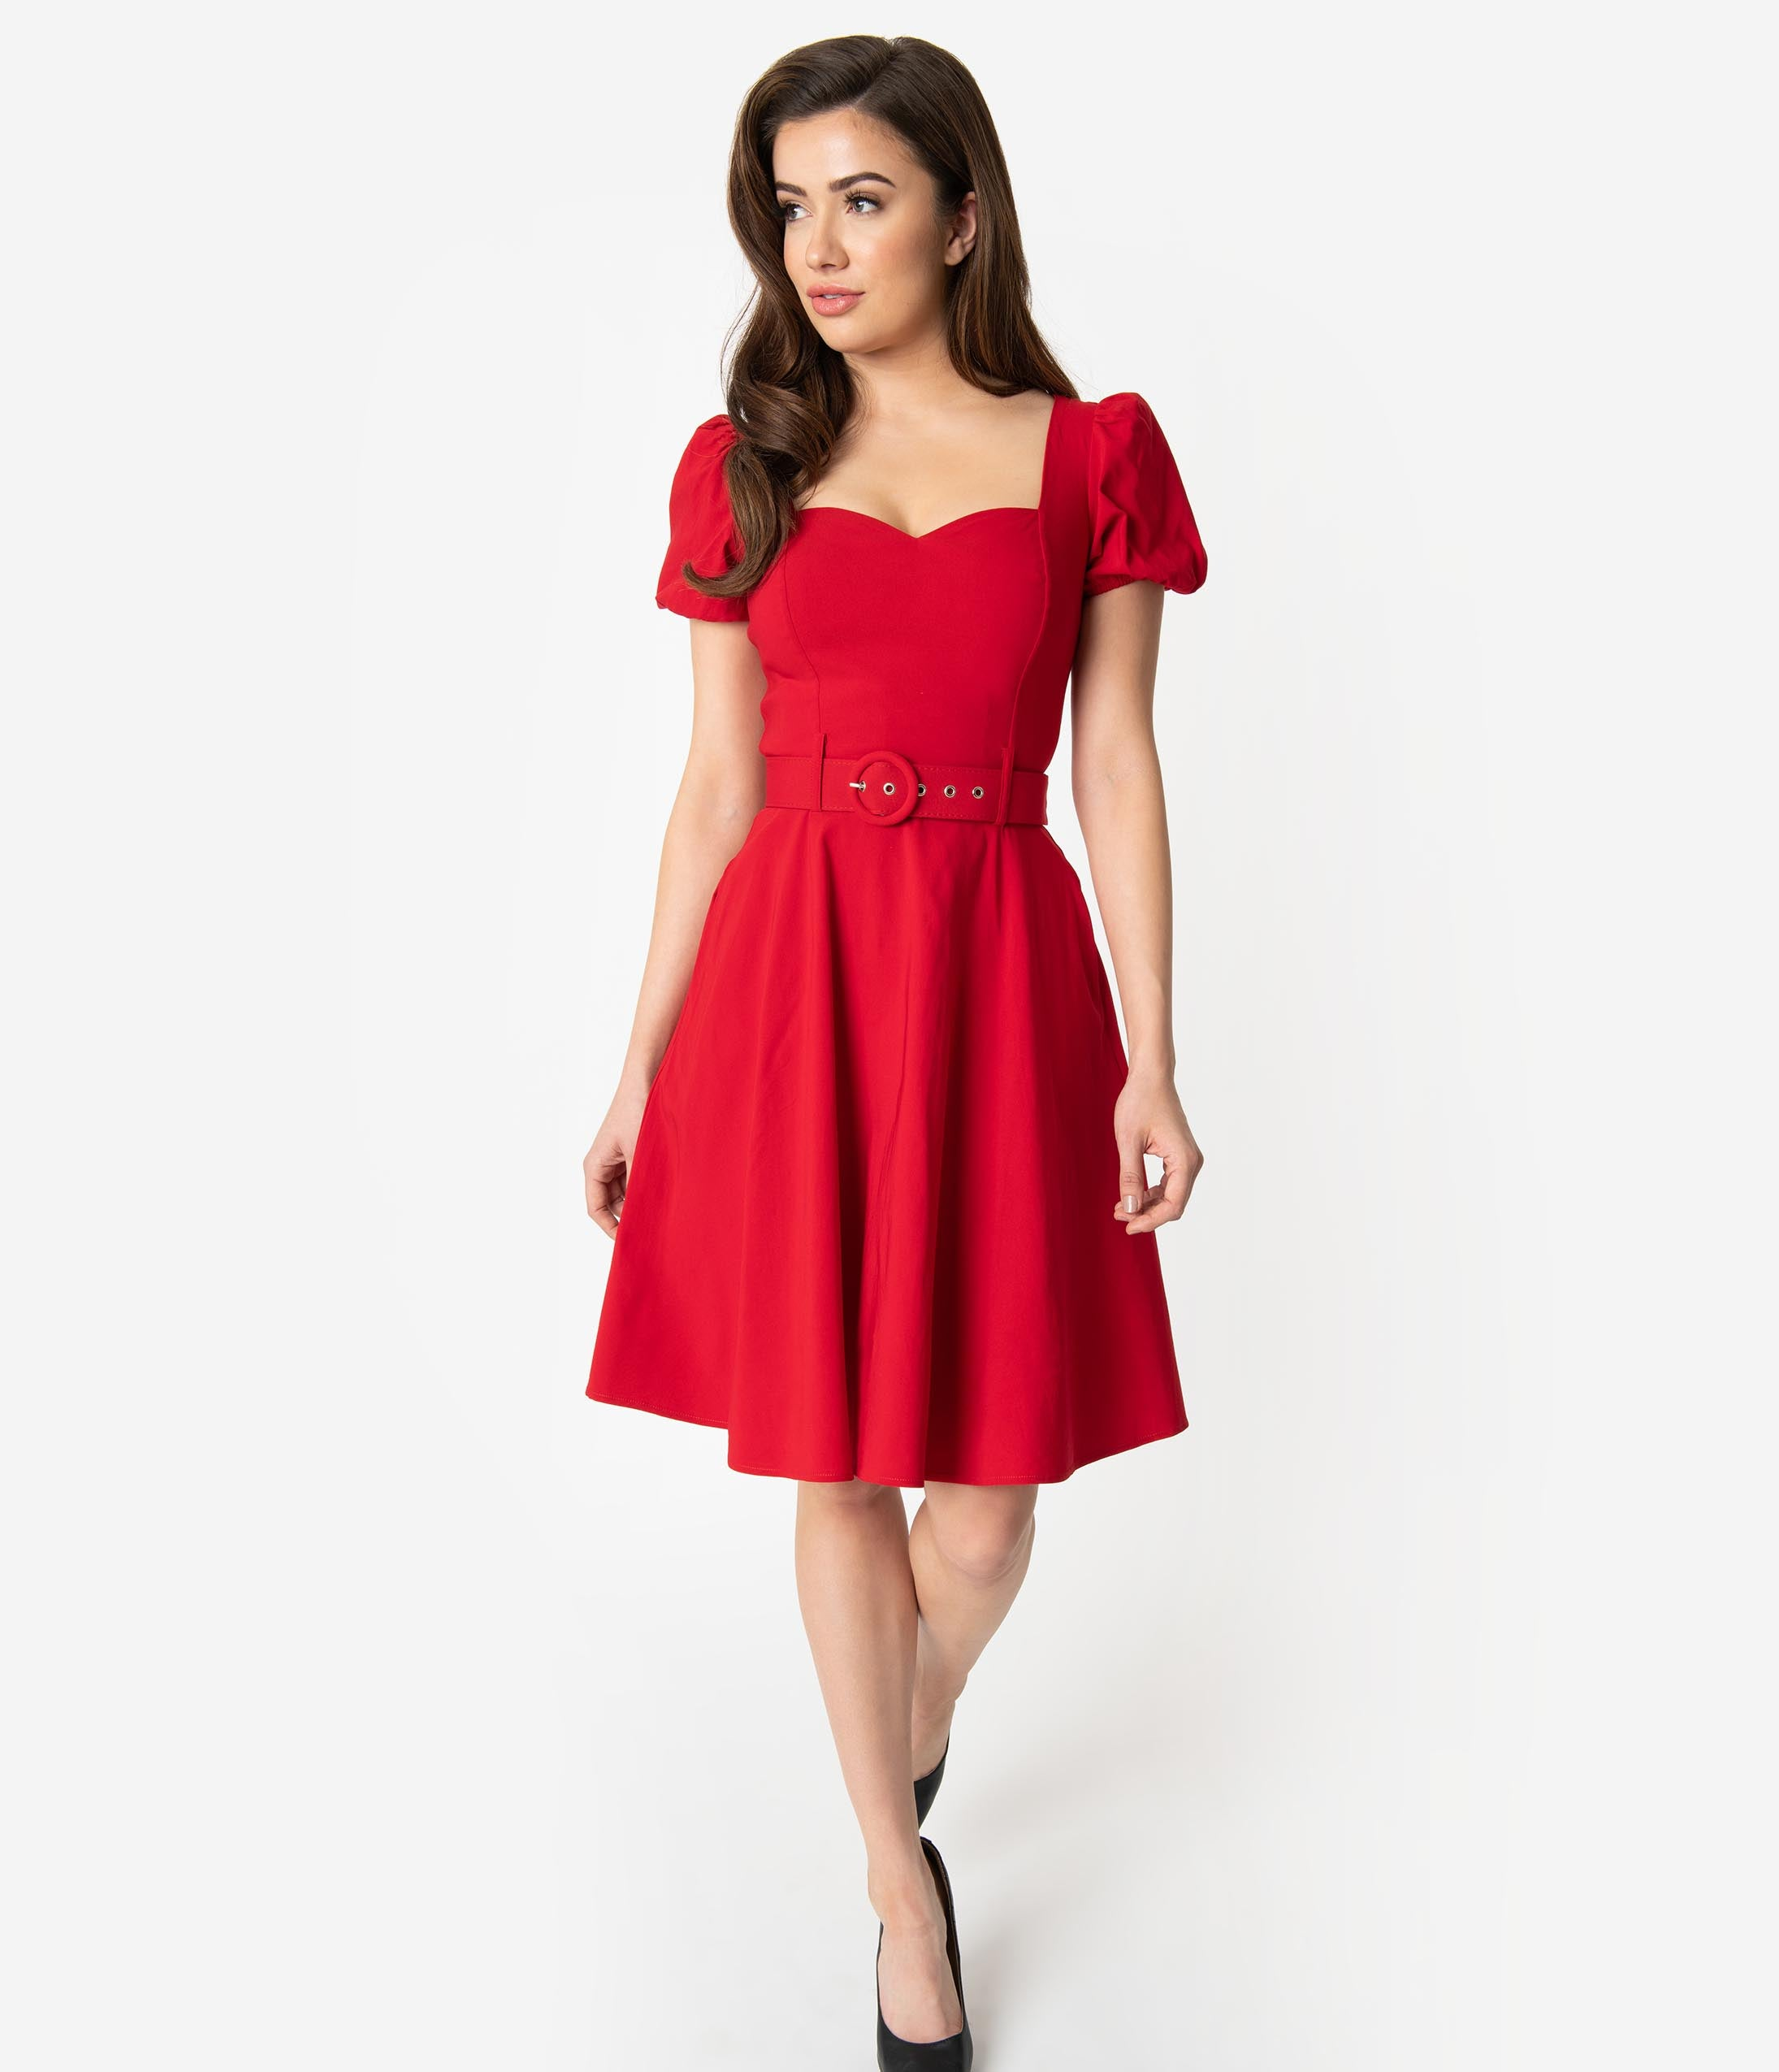 50 Vintage Inspired Clothing Stores Collectif 1950S Style Red Sweetheart Short Sleeve Paisley Fit  Flare Dress $78.00 AT vintagedancer.com